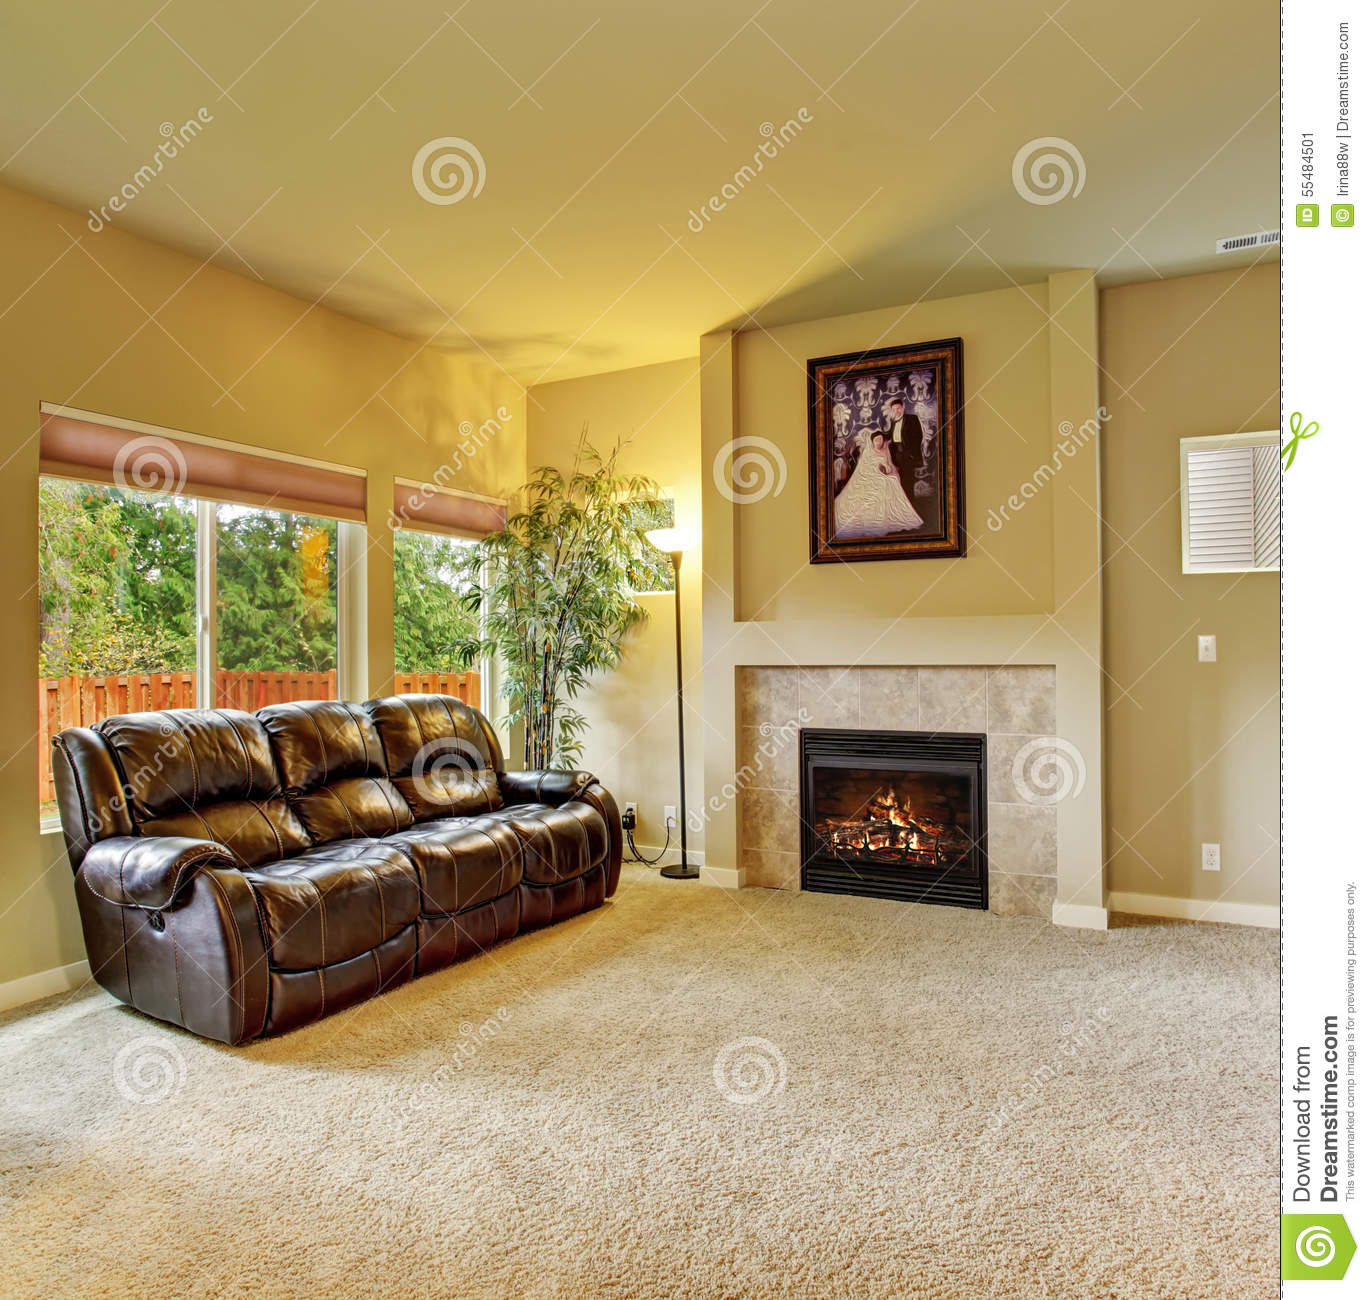 Cozy Living Room With Carpet And Fireplace Stock Photo Image